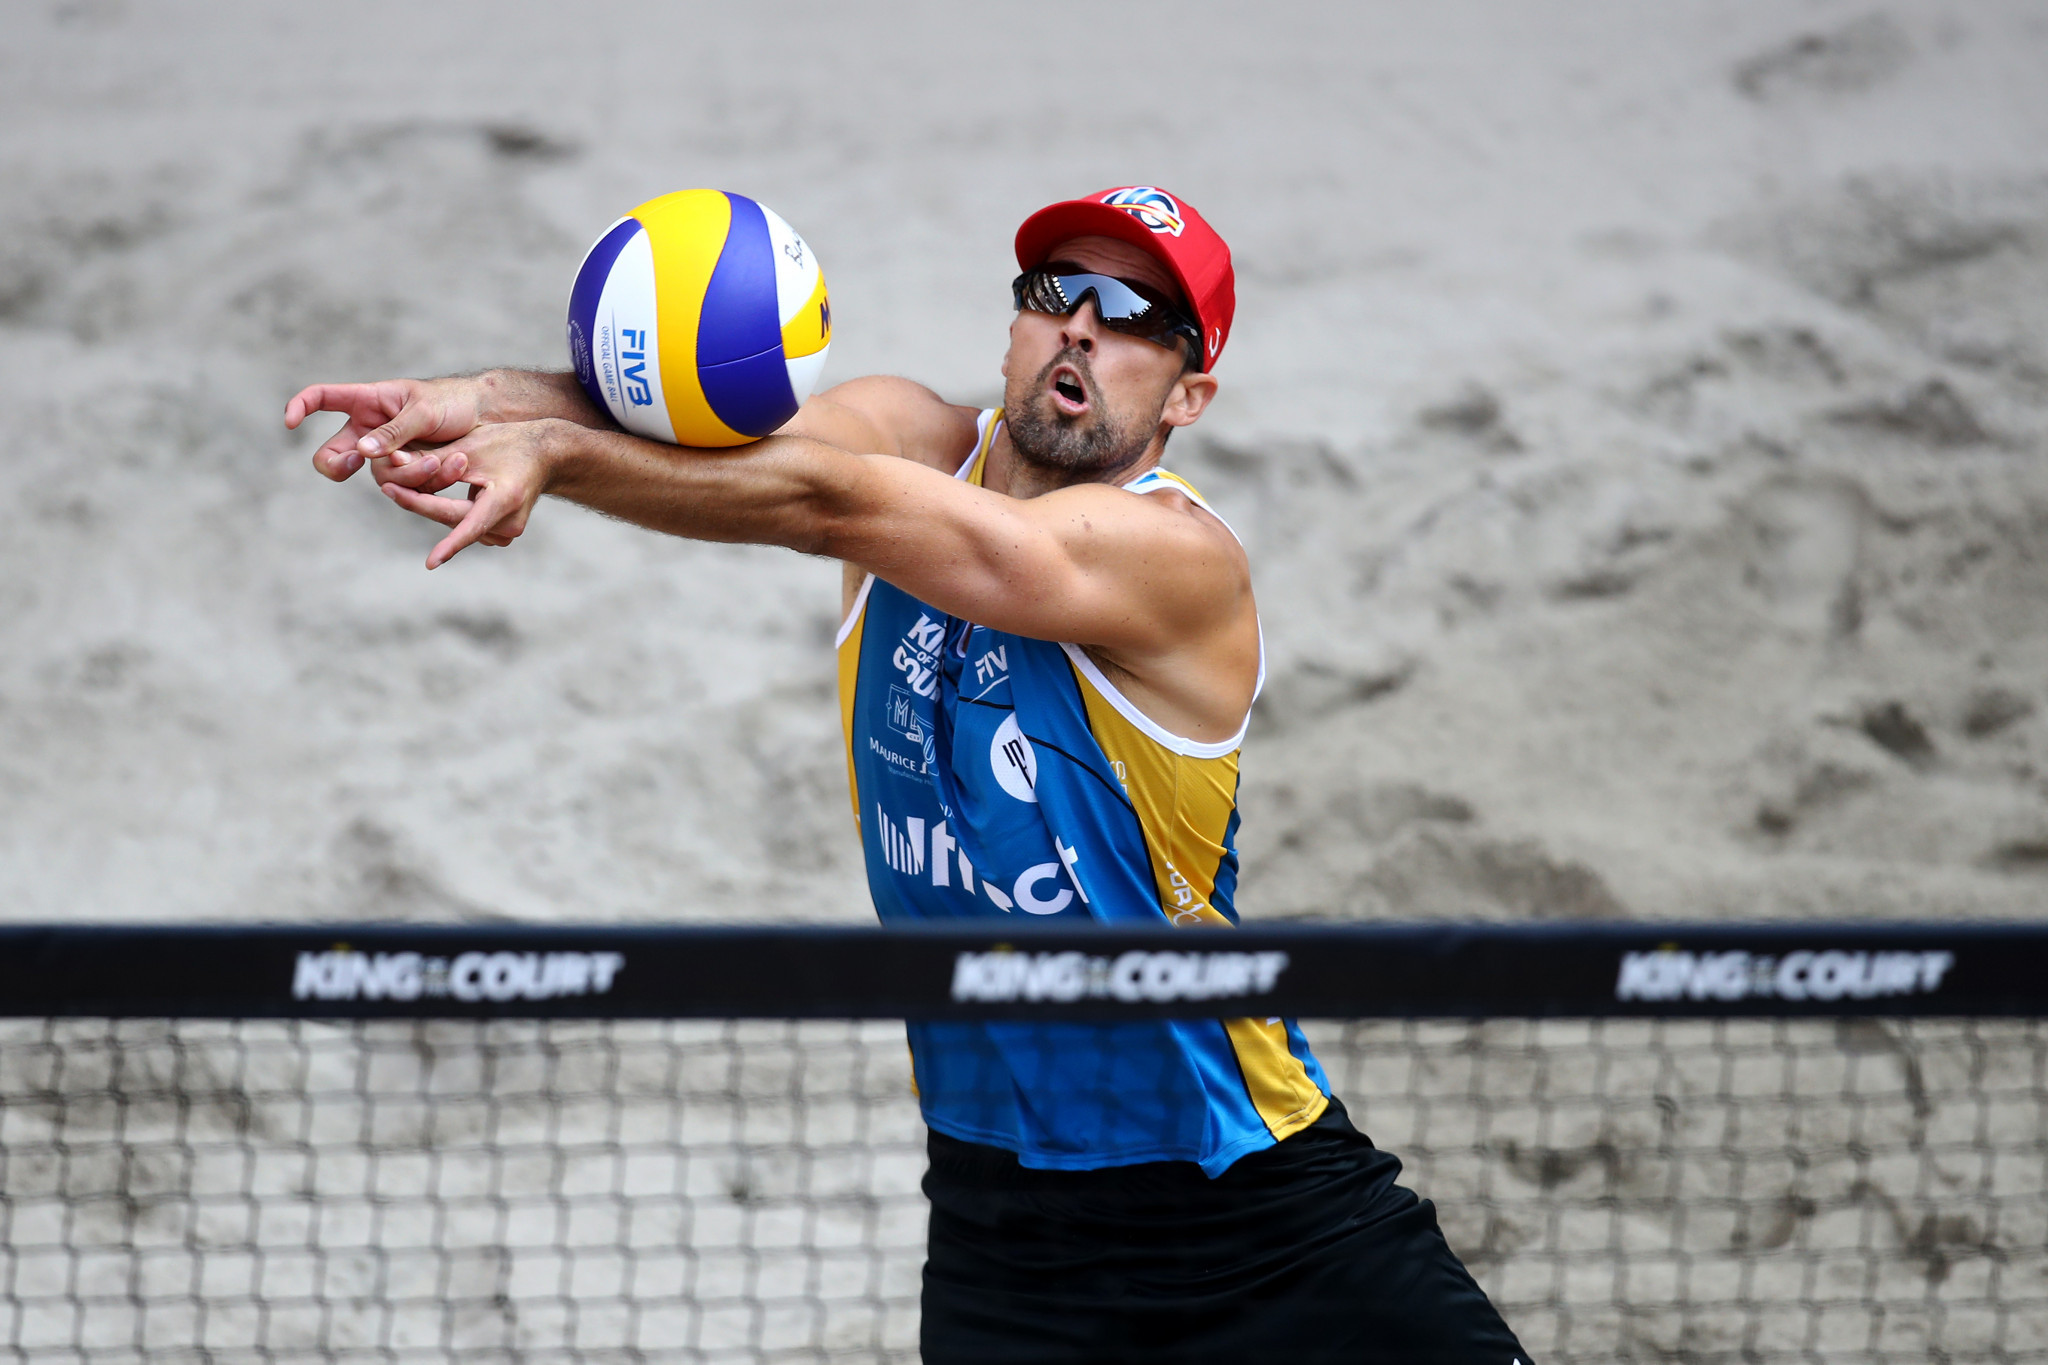 Beach volleyball is one of the four new sports set to feature at the 2022 European Championships in Munich ©Getty Images